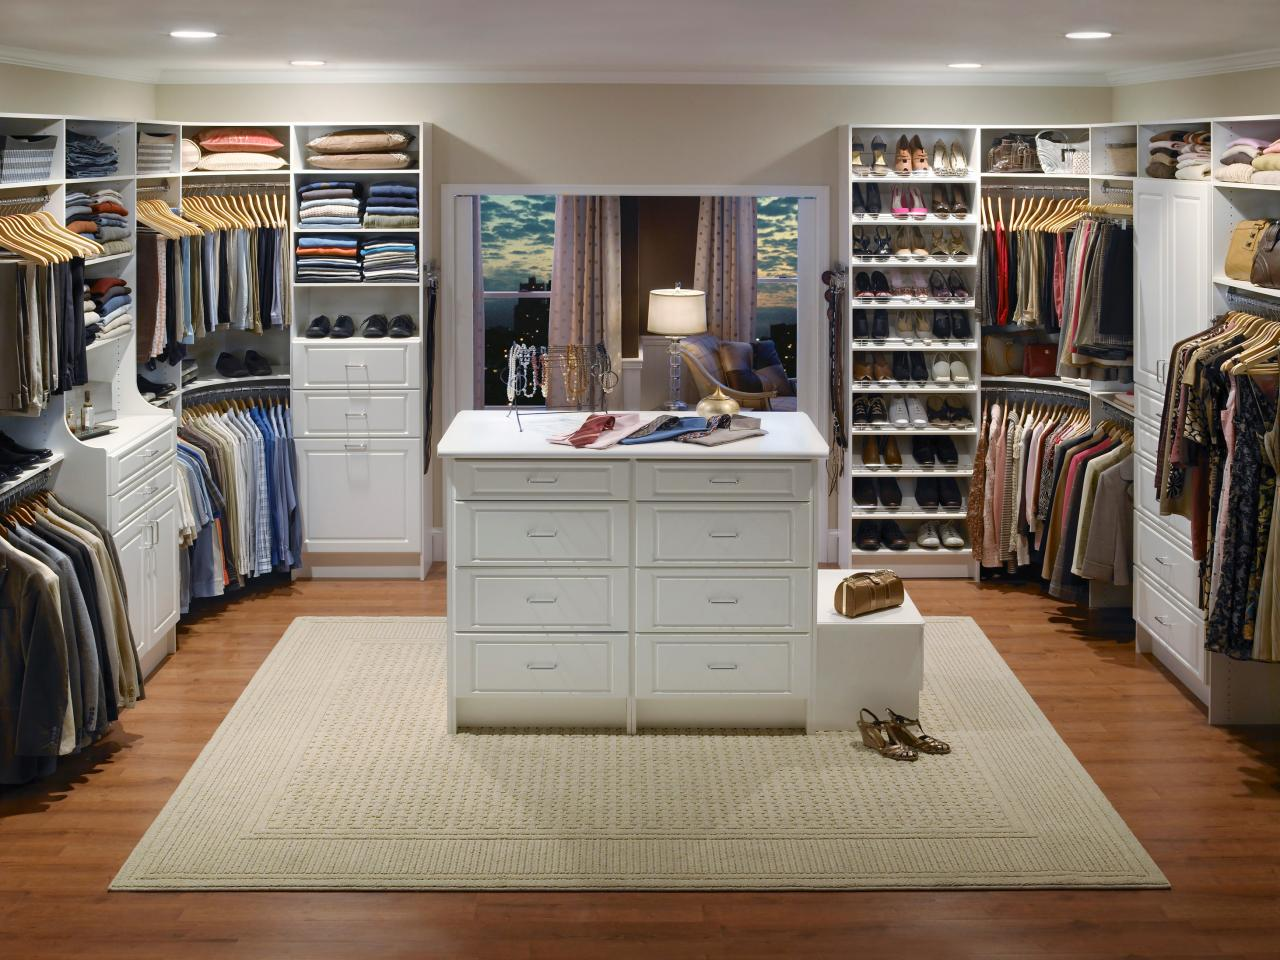 Install Bright Lighting for Wide Walk In Closet with Stunning Closet Design Ideas with using Classic White Dresser